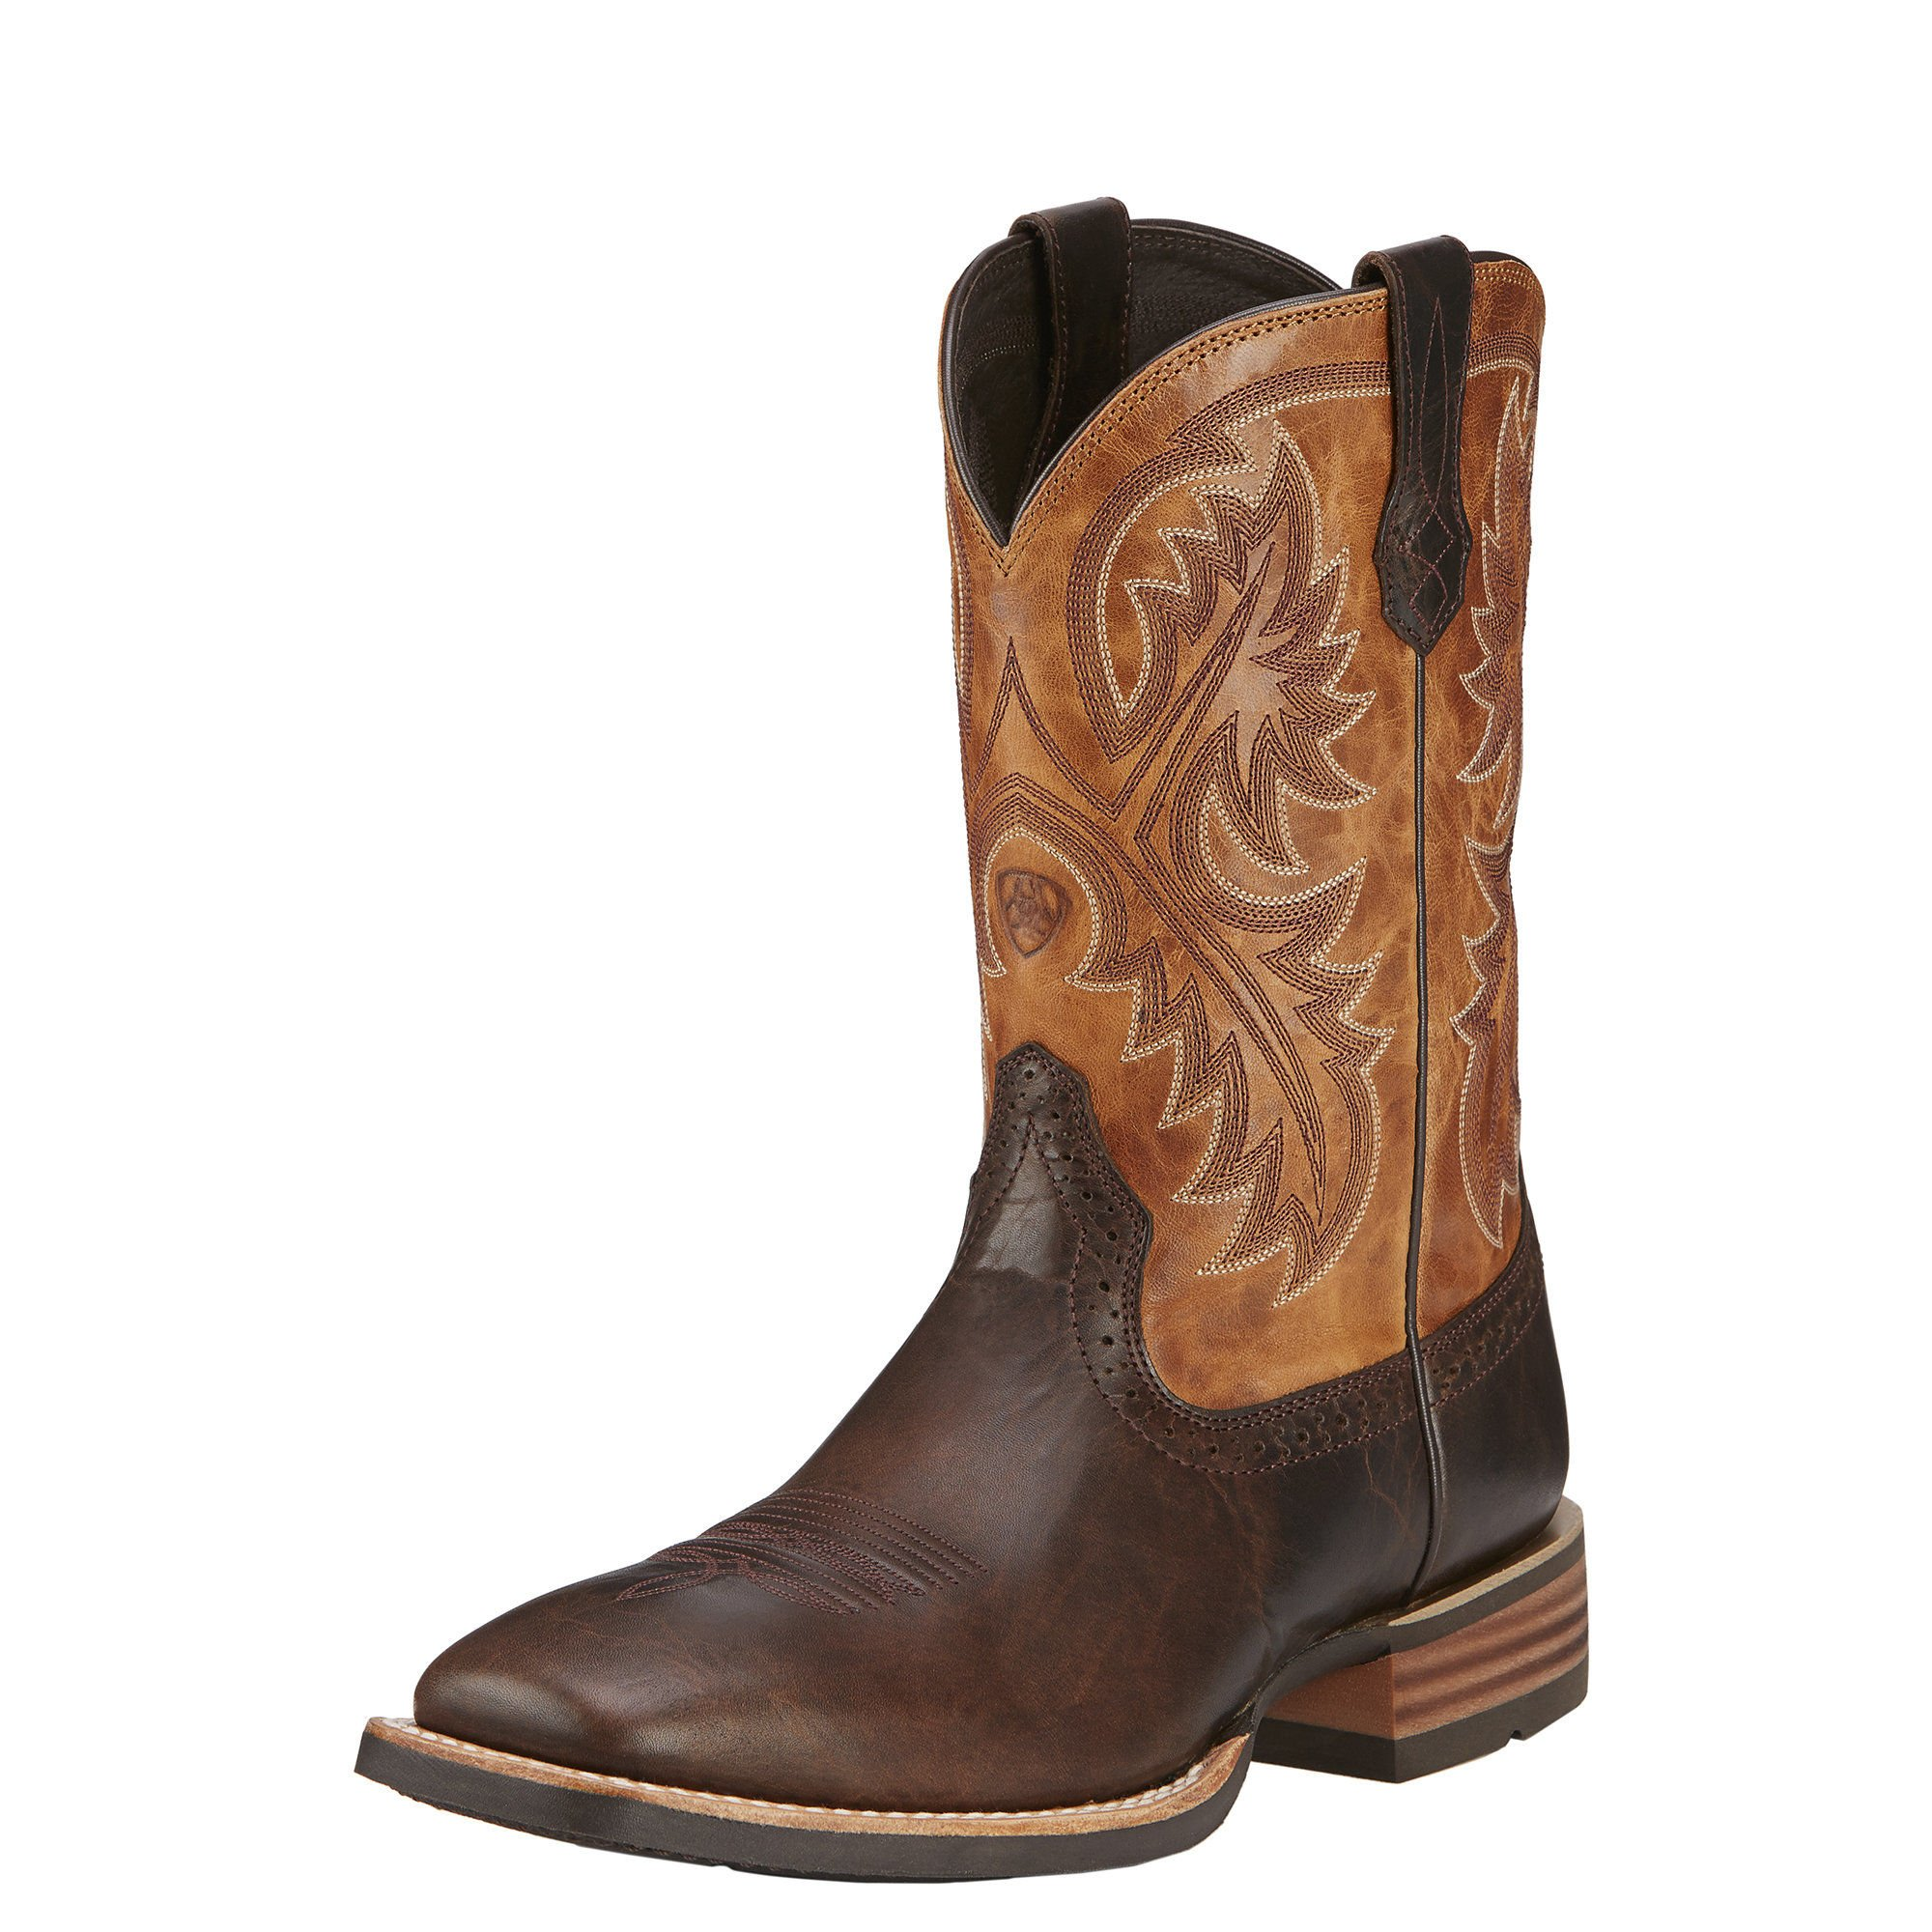 Ariat Men's Quickdraw Western Cowboy Boot, Thunder Brown/Two Tone Tan, 13 D US